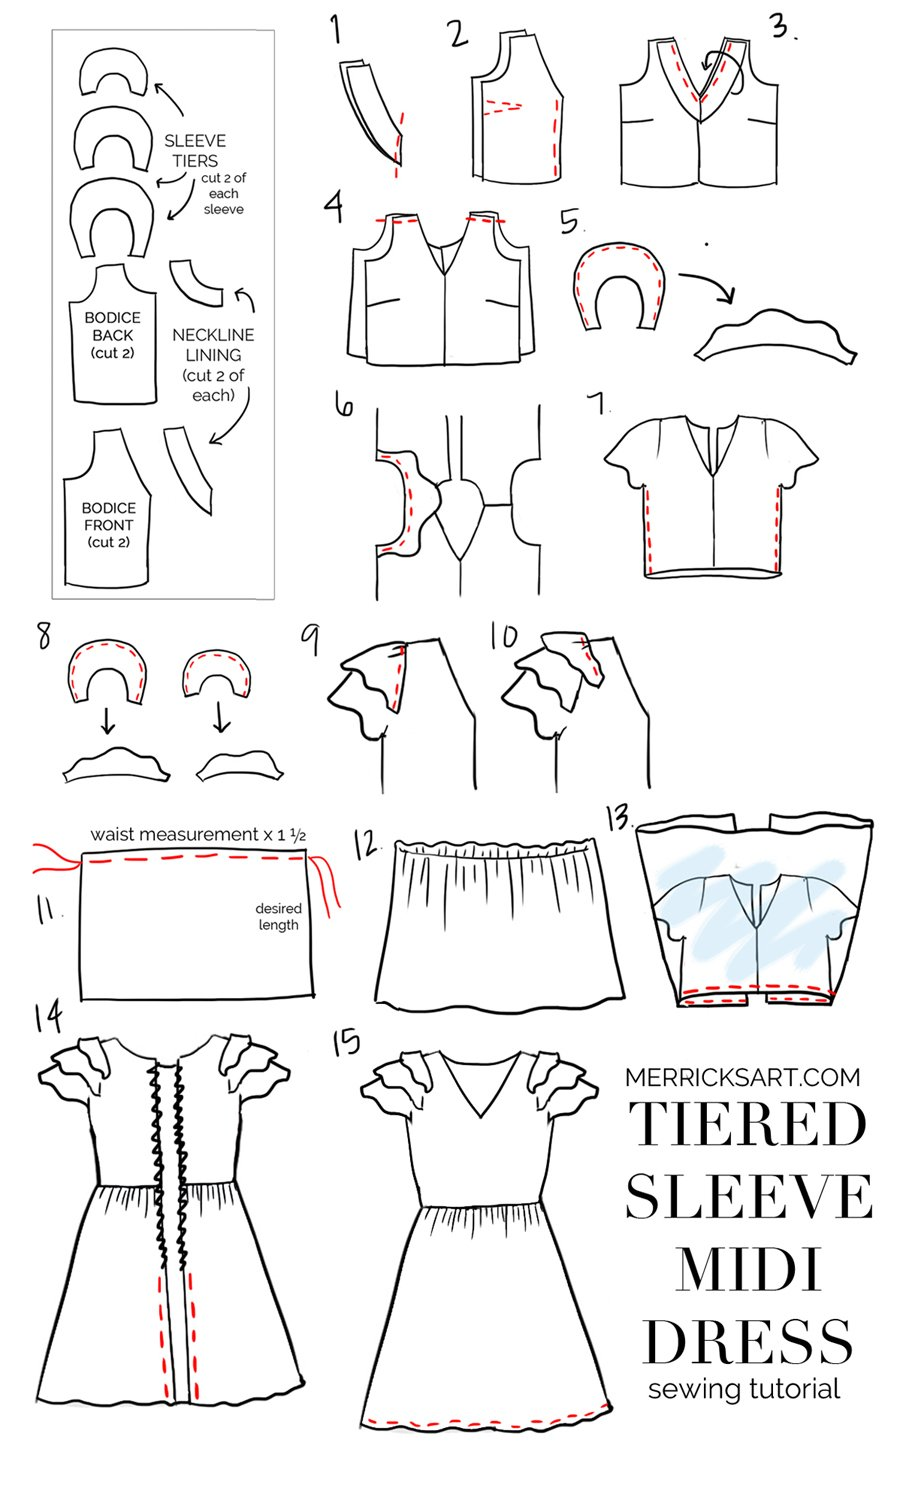 Merrick's Art | DIY Tiered Sleeve Midi Dress Tutorial